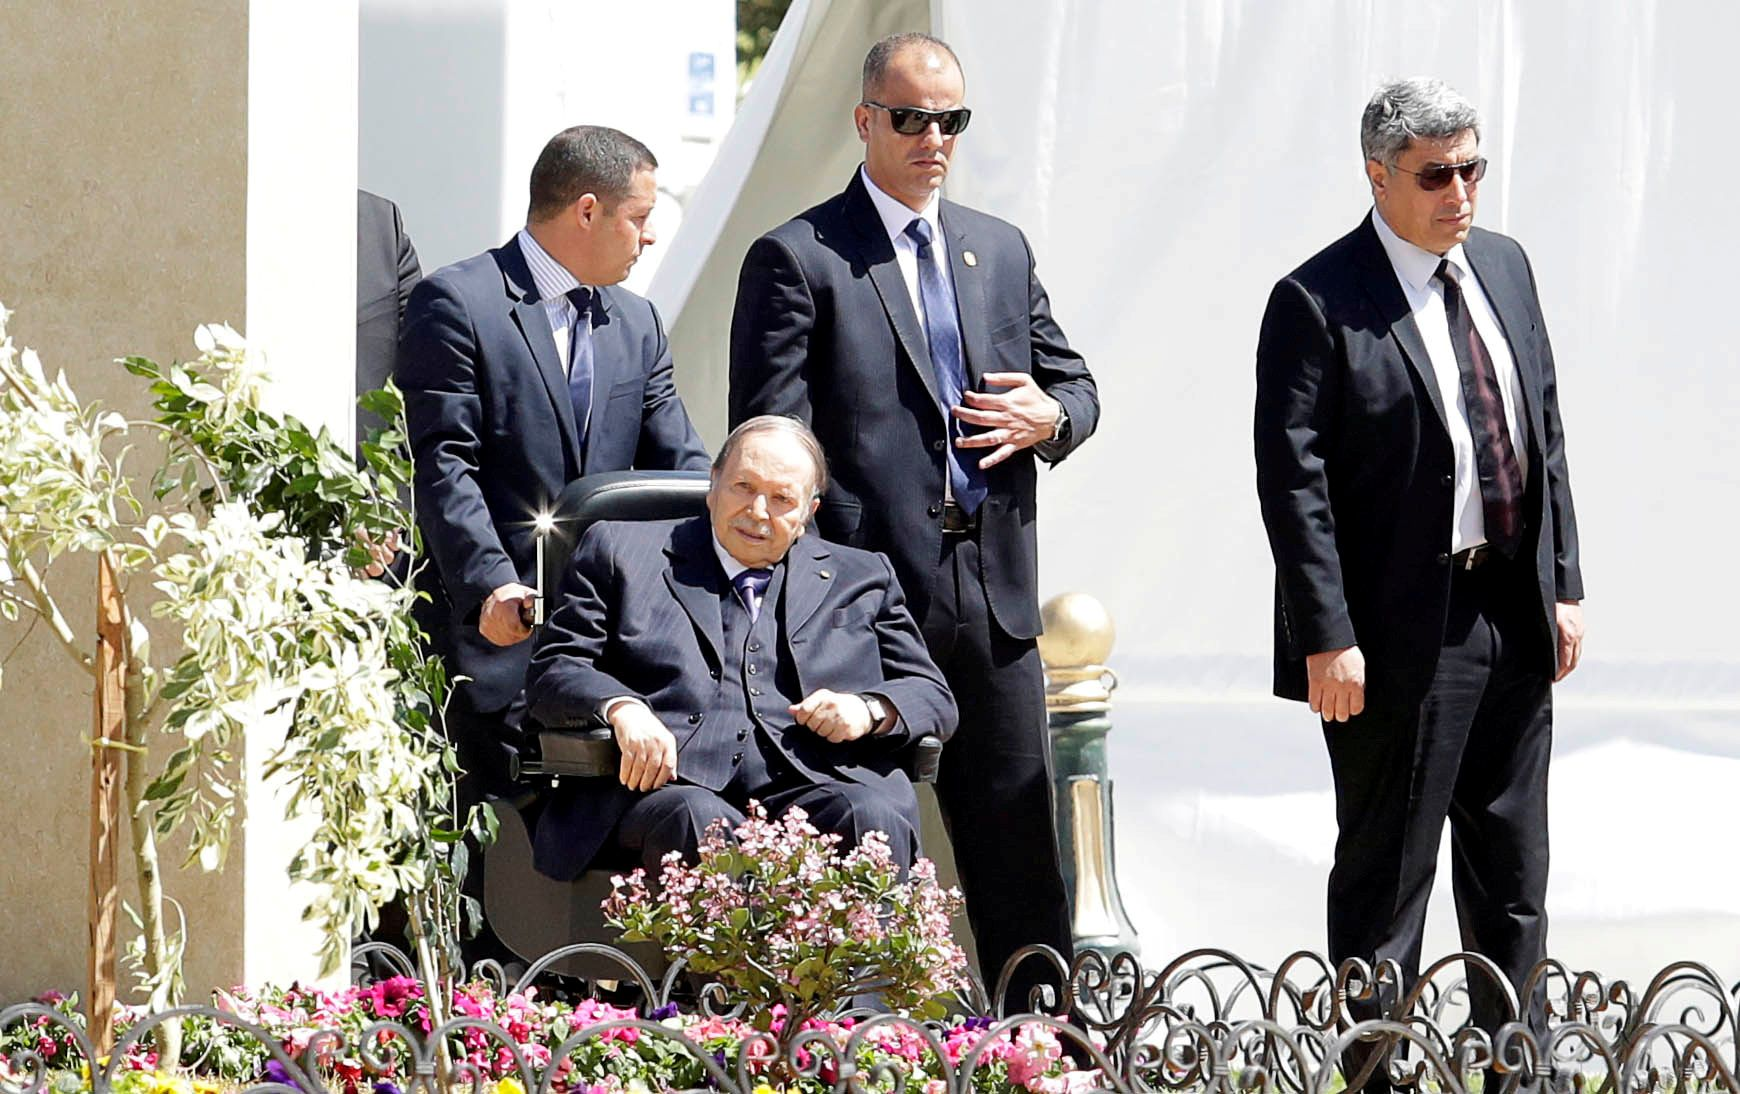 ALGERIA: BOUTEFLIKA CONCEDES, BUT WILL ANYTHING CHANGE?